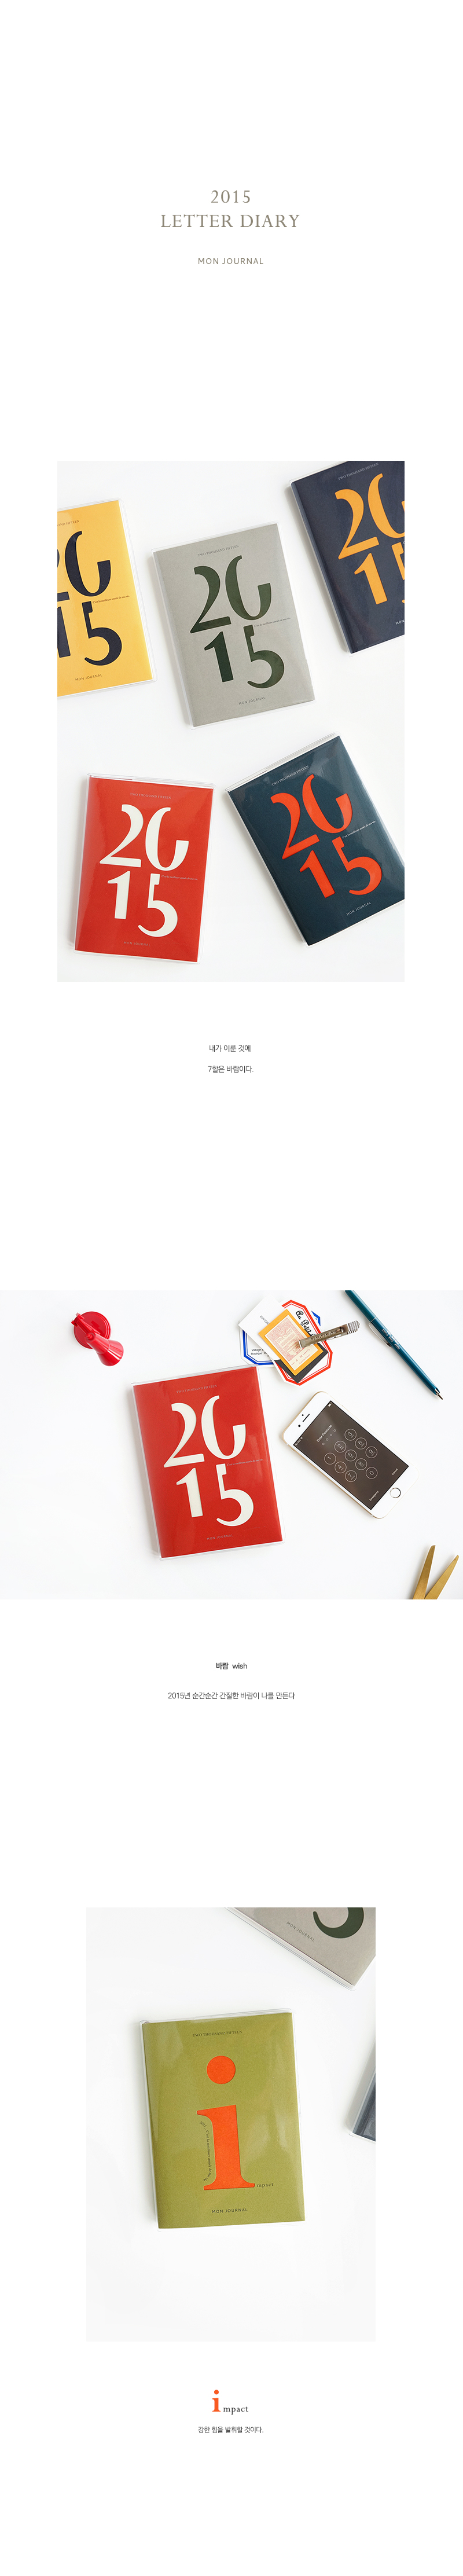 the letter l 2015 letter diary 날짜인쇄형 인터넷교보문고 1661